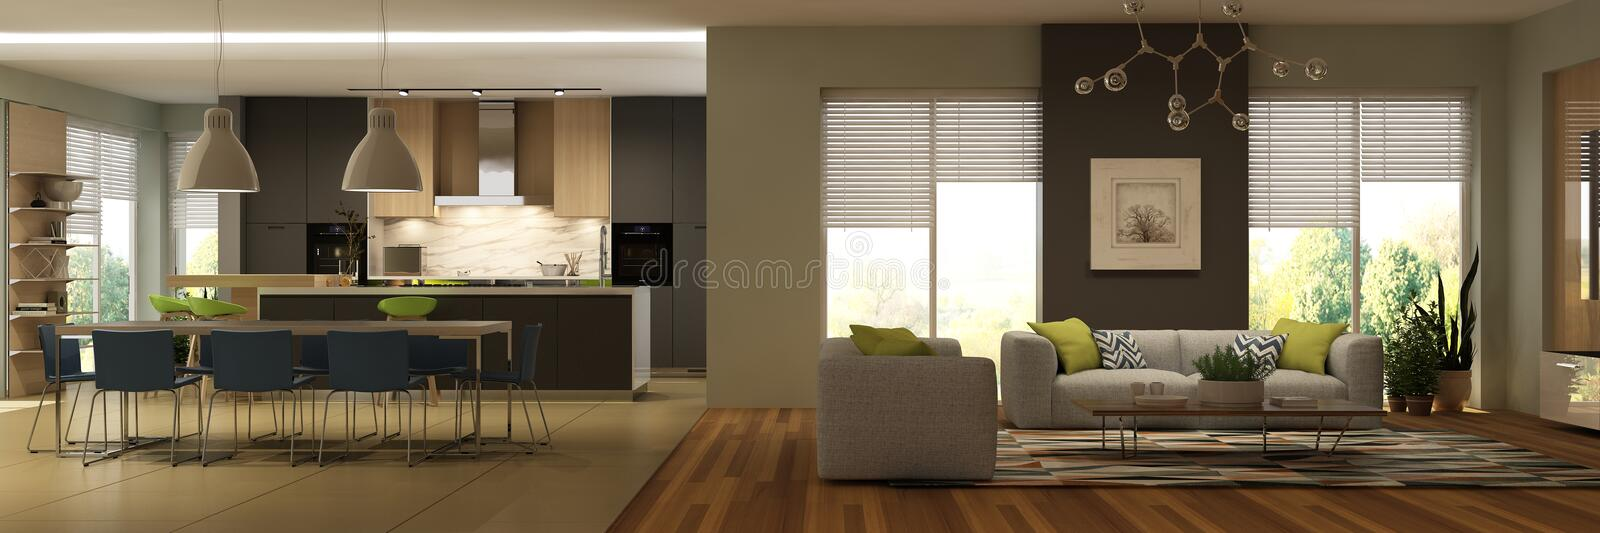 Modern interior of living room with kitchen. stock images